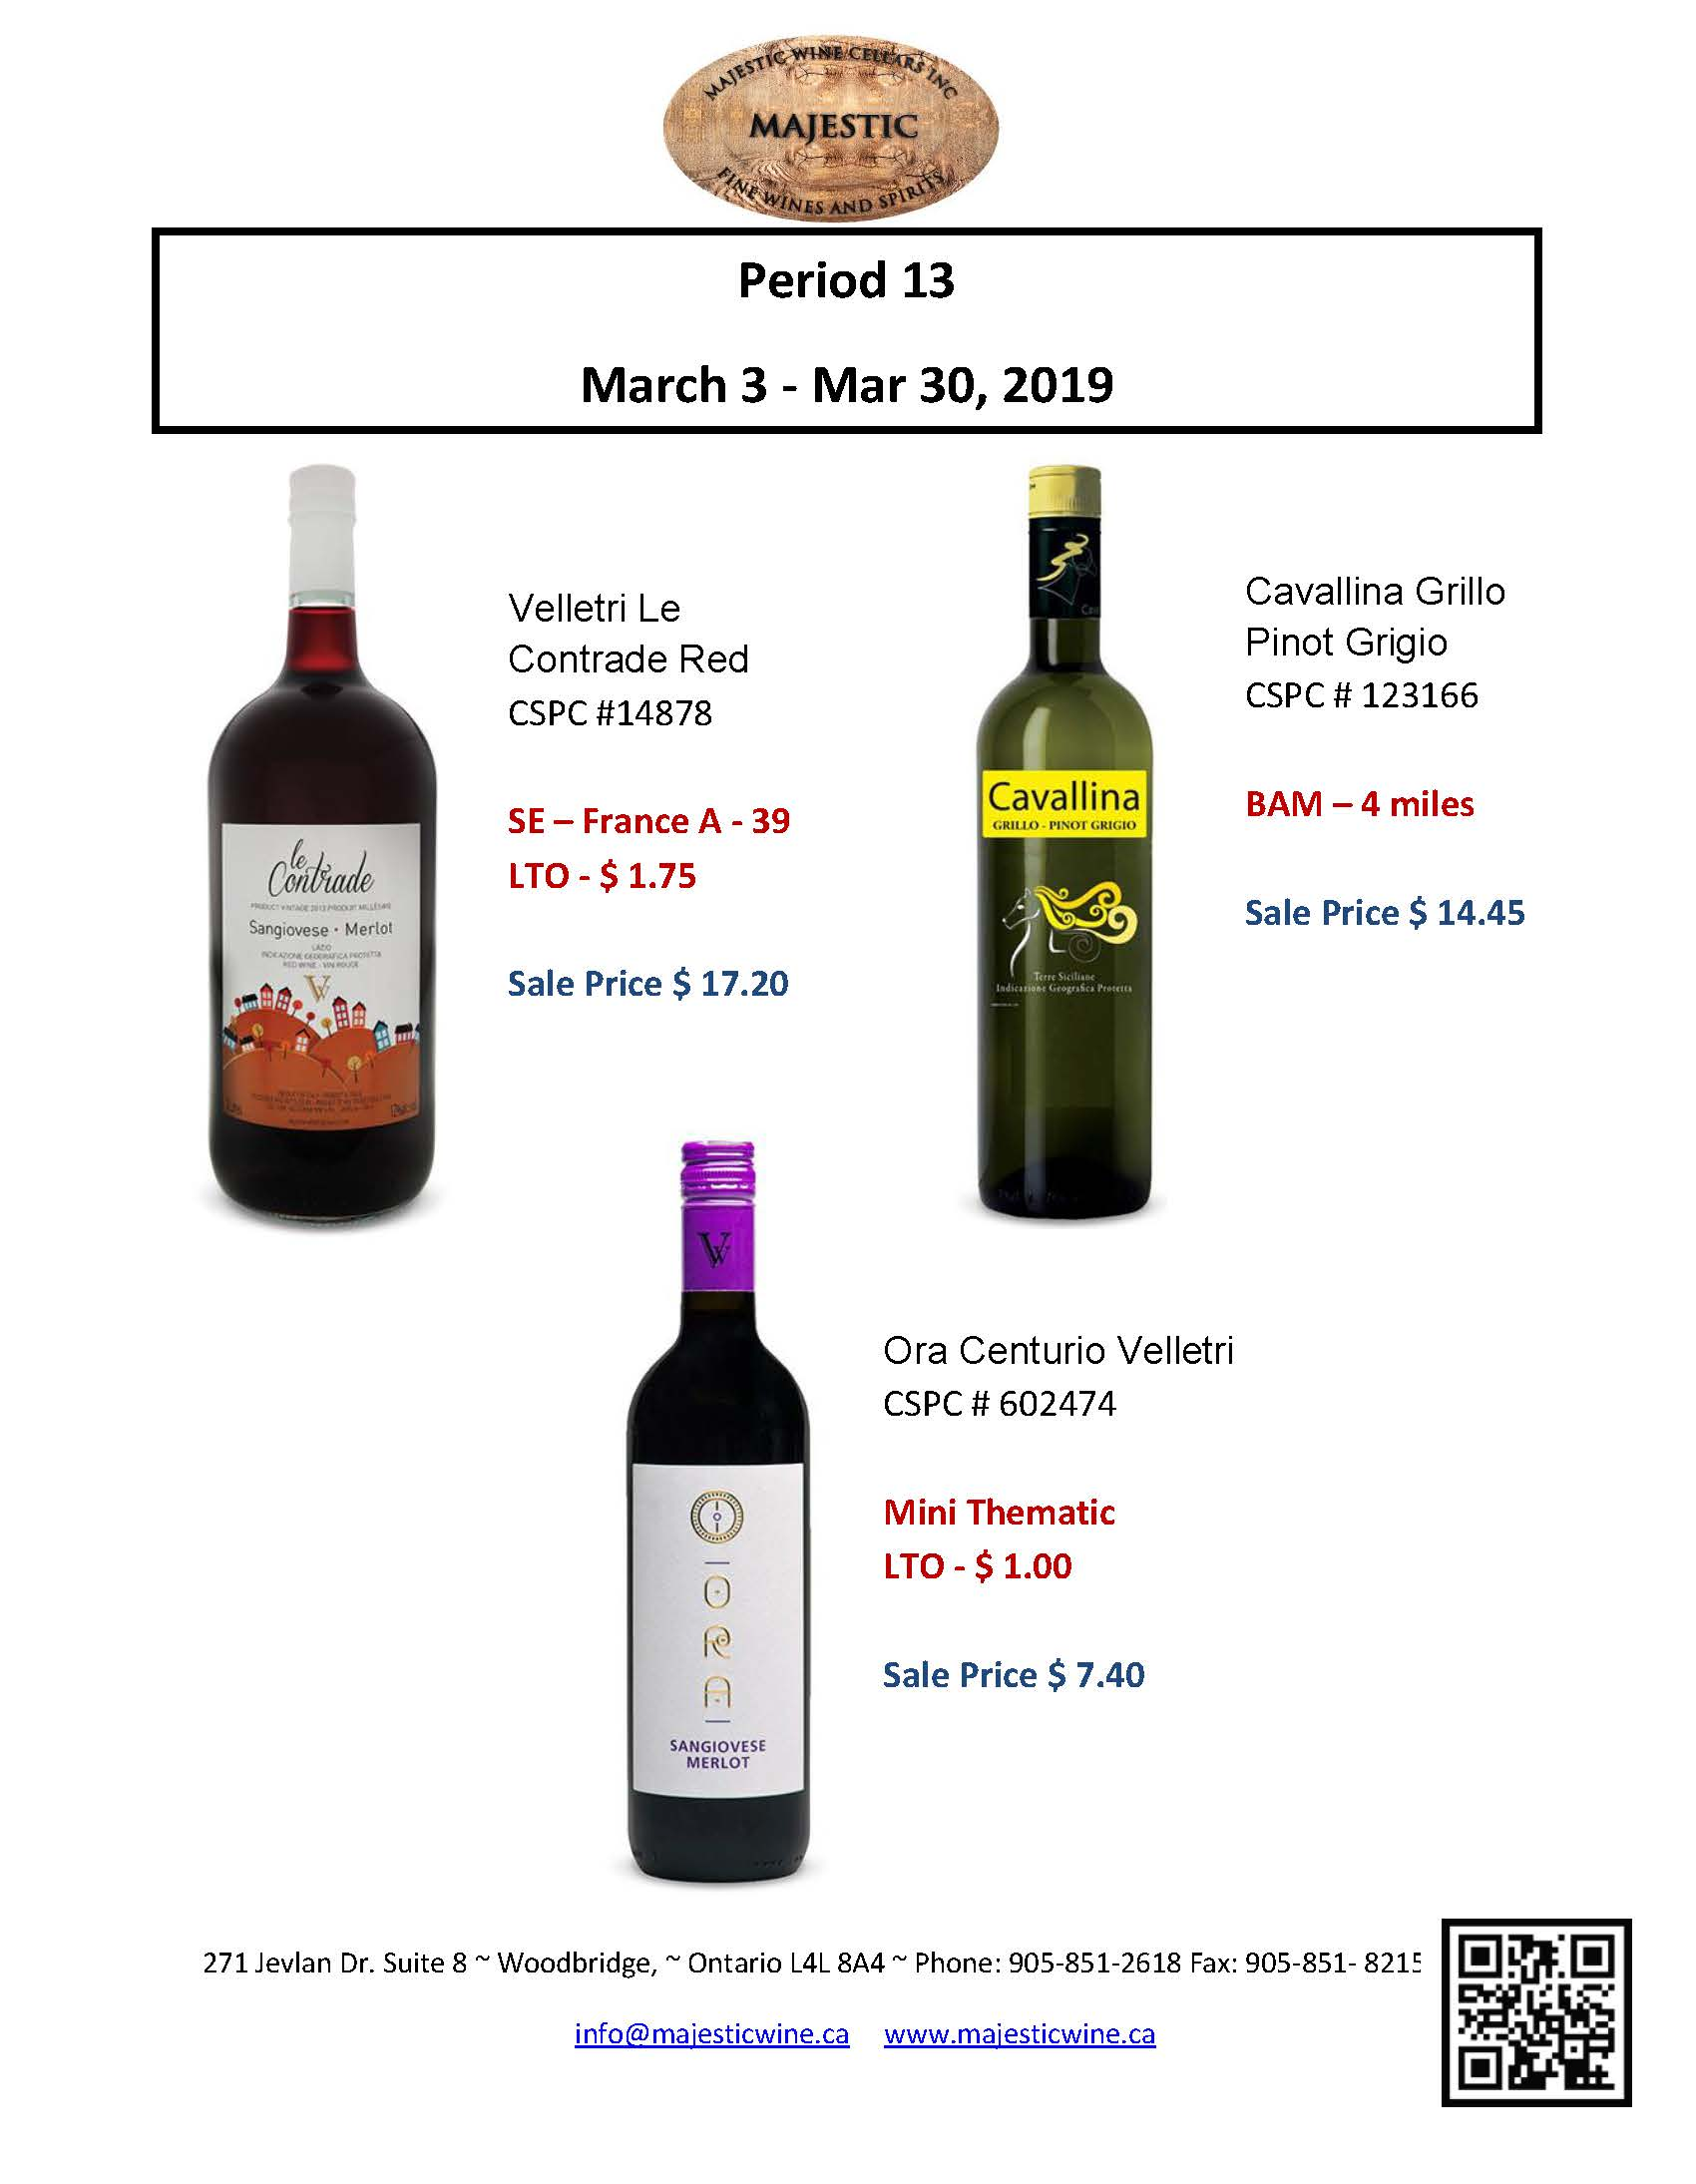 Period 13: March 3rd - 30th Promotion